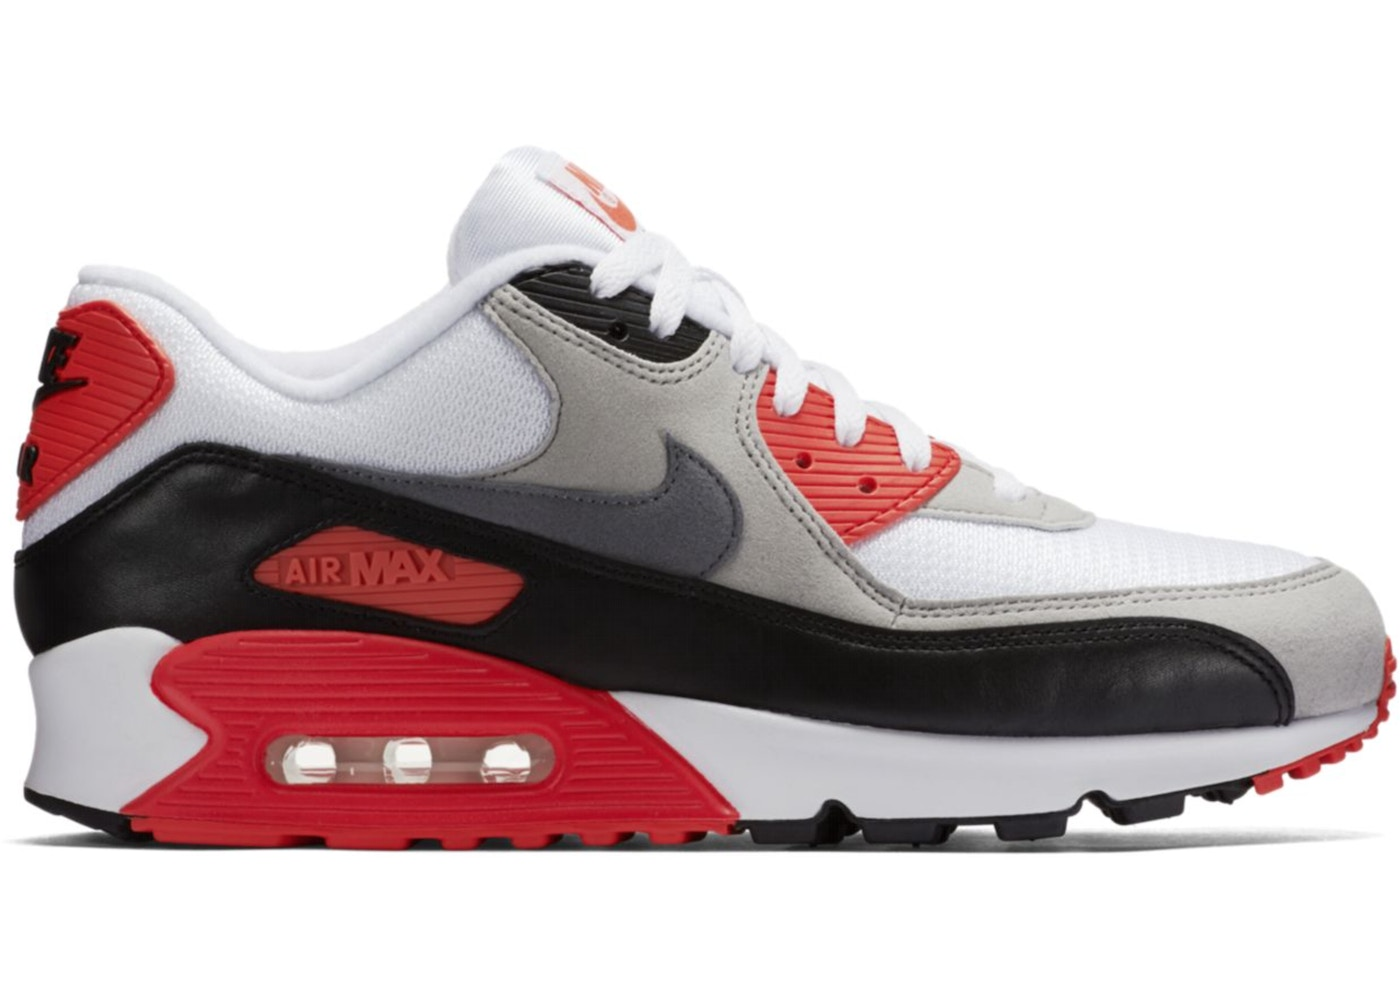 38e5d54c950727 Buy Nike Air Max 90 Shoes   Deadstock Sneakers